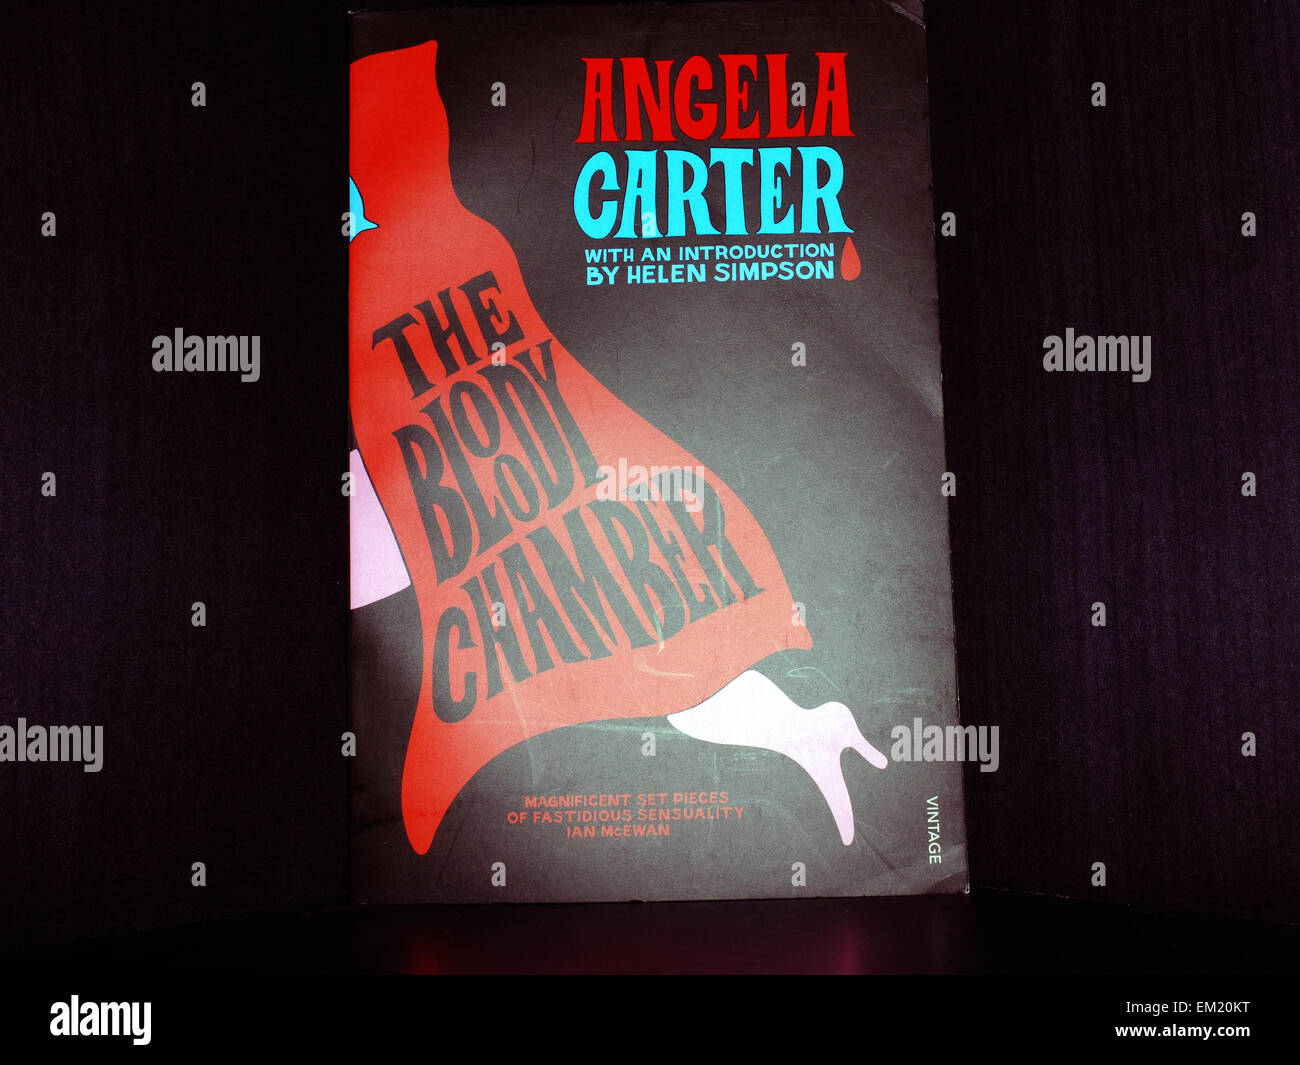 The Bloody Chamber by Angel Carter photographed against a black background. - Stock Image